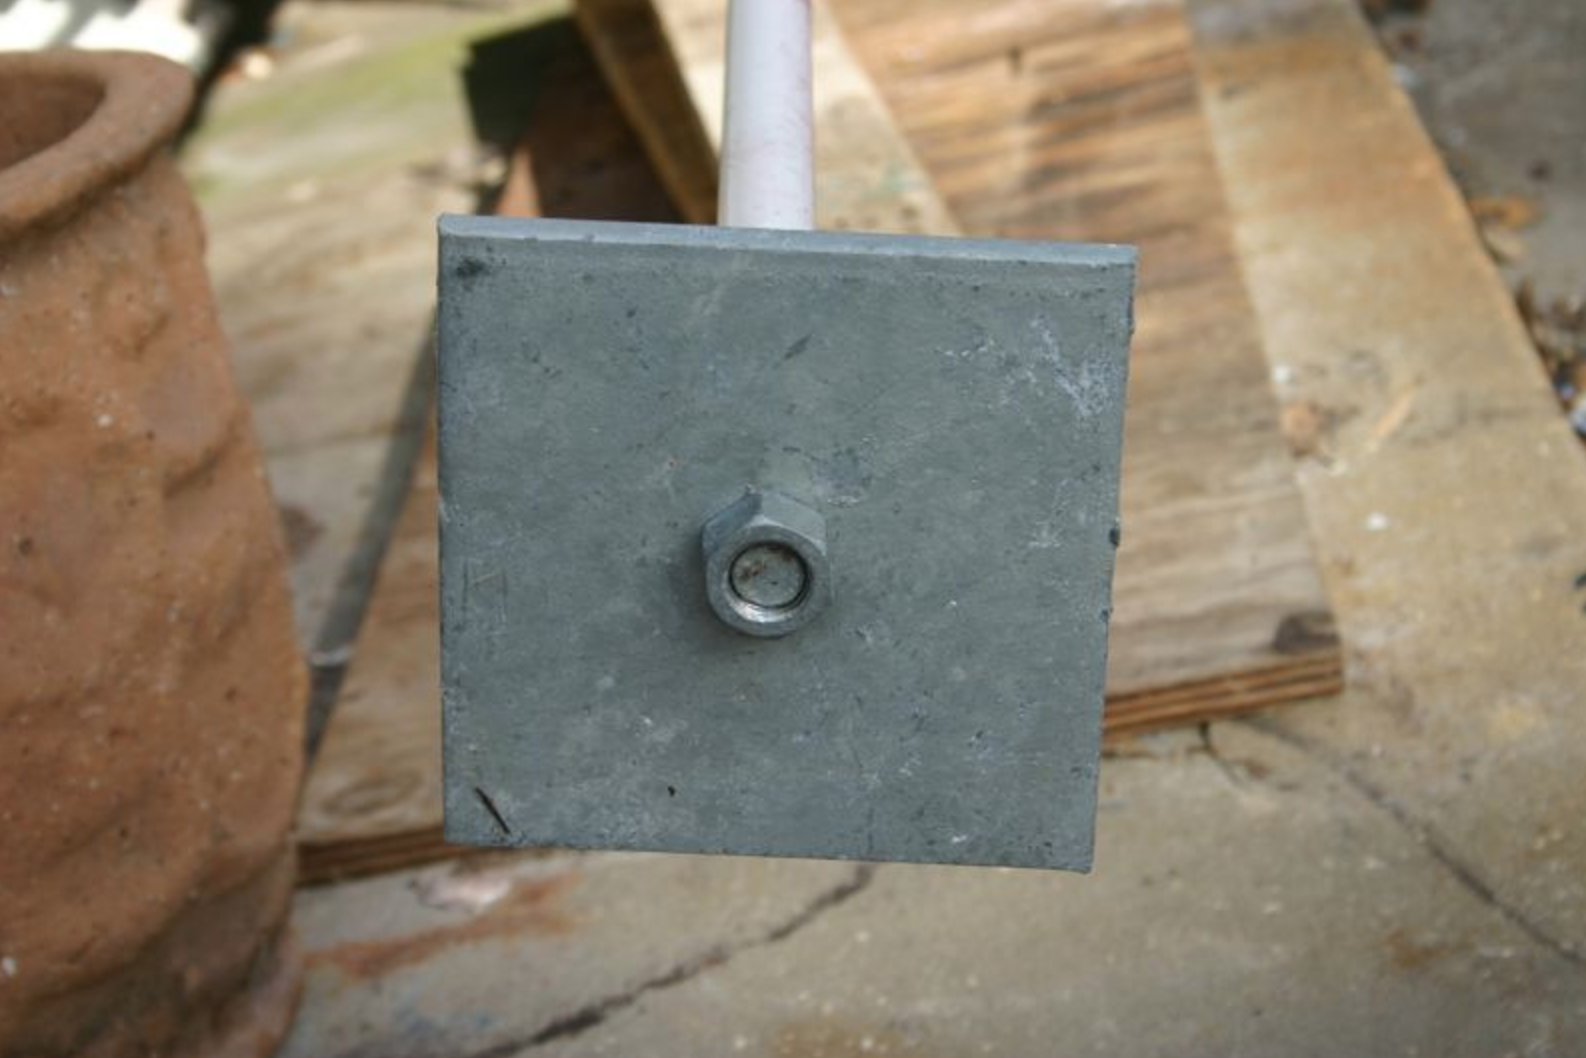 6x6 plate on hot dipped galvanized threaded rod as opposed to black steel bent 90 degrees in the field.